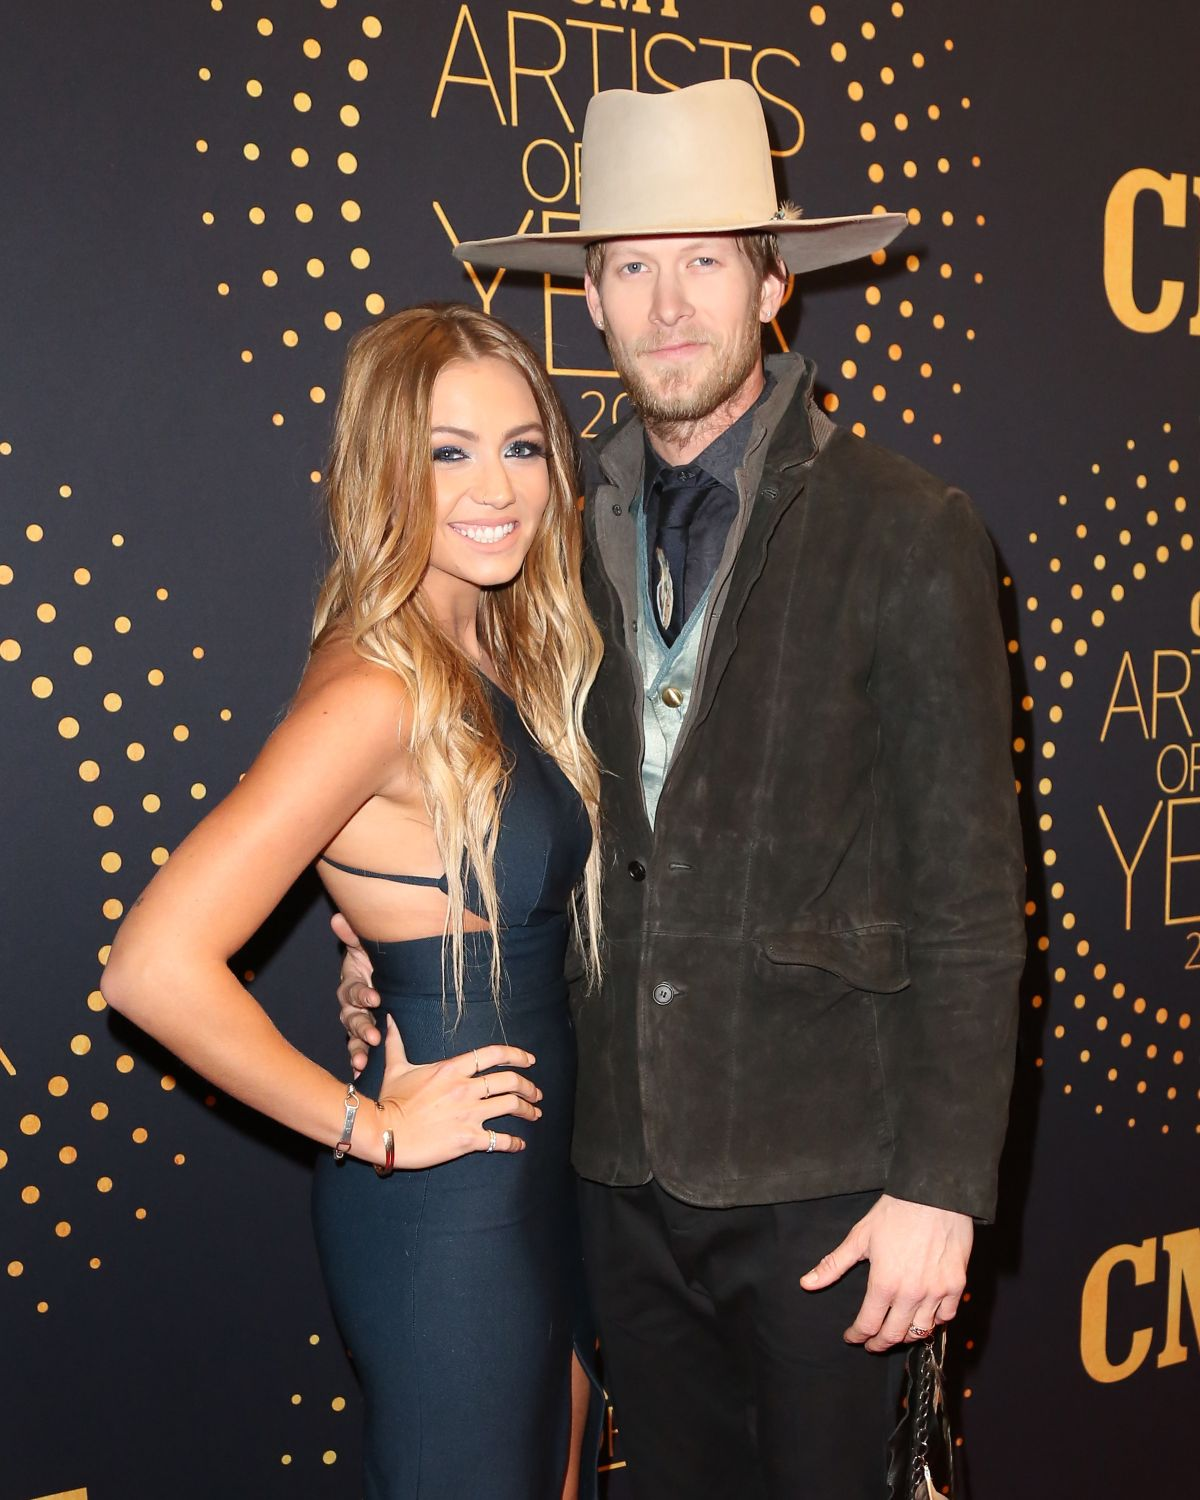 BRITTNEY MARIE COLE at 2015 CMT Artists of the Year Awards in Nashville 12/02/2015